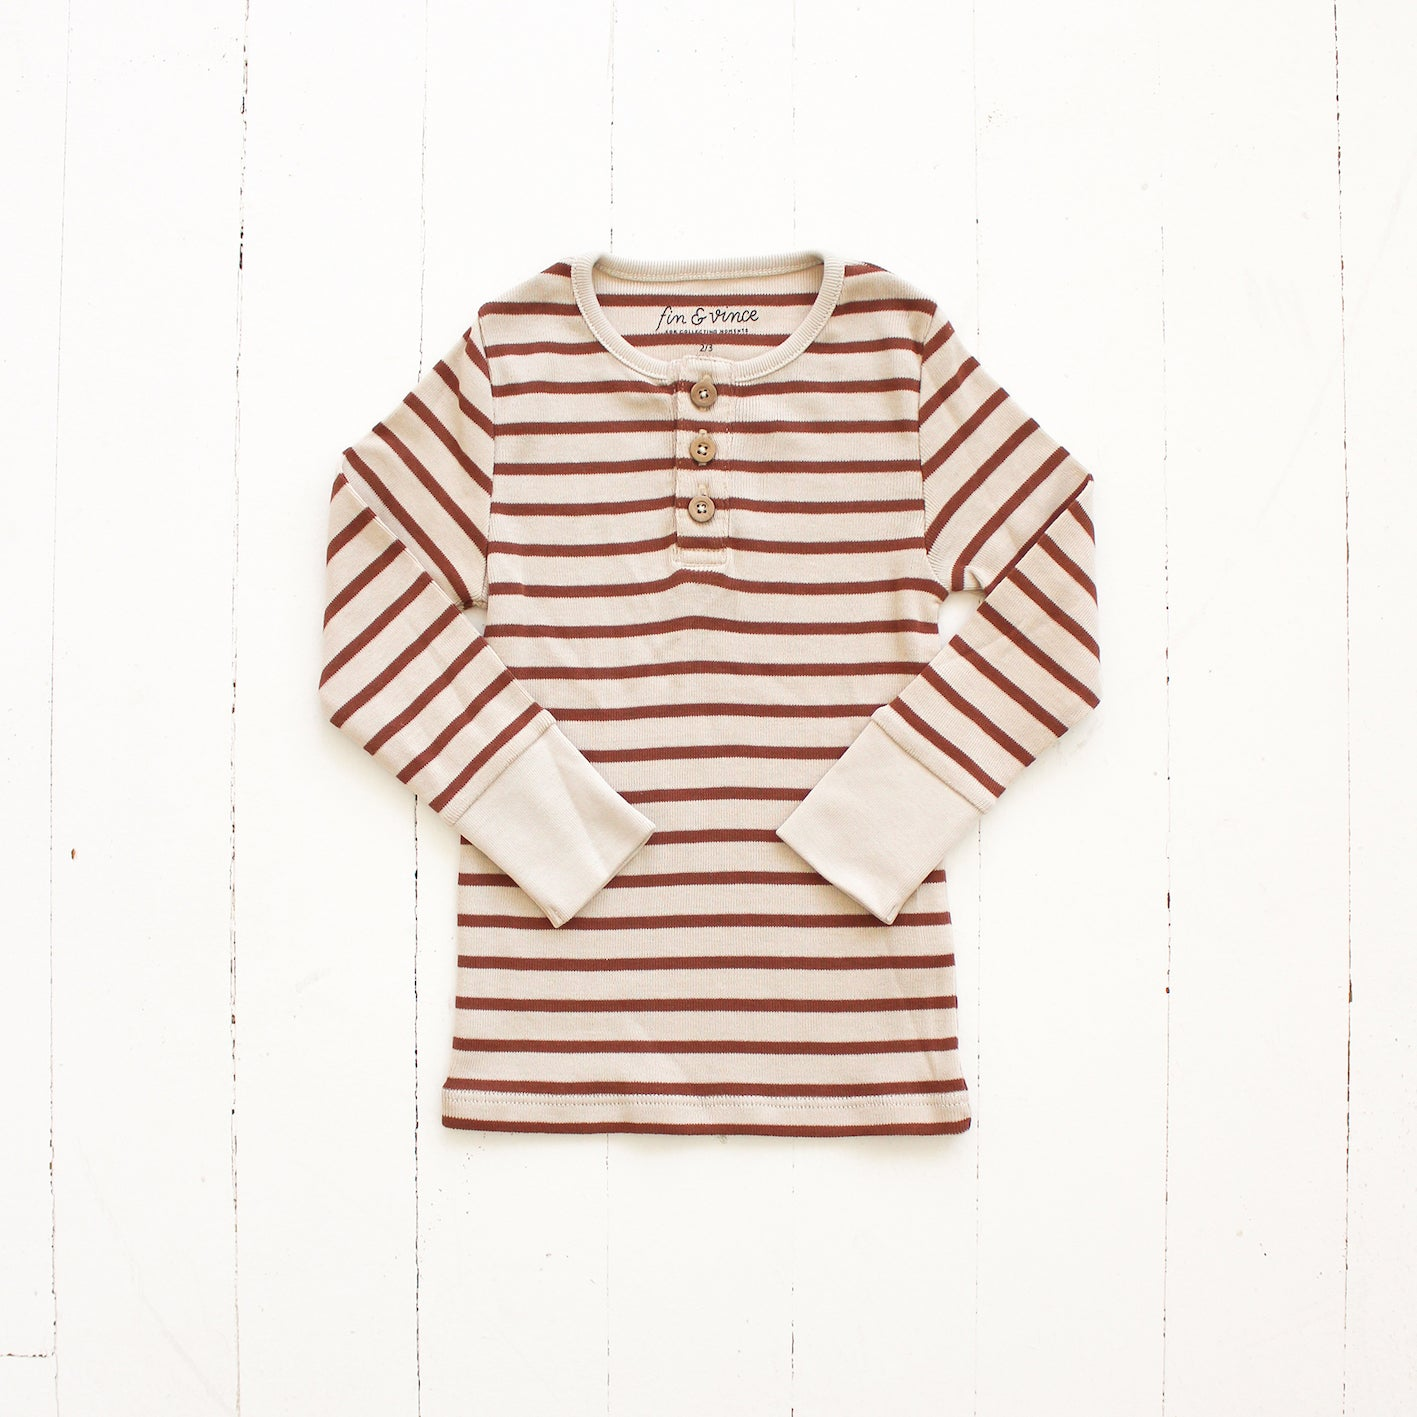 Fin and Vince Pima Cotton Striped Henley Top - Spice